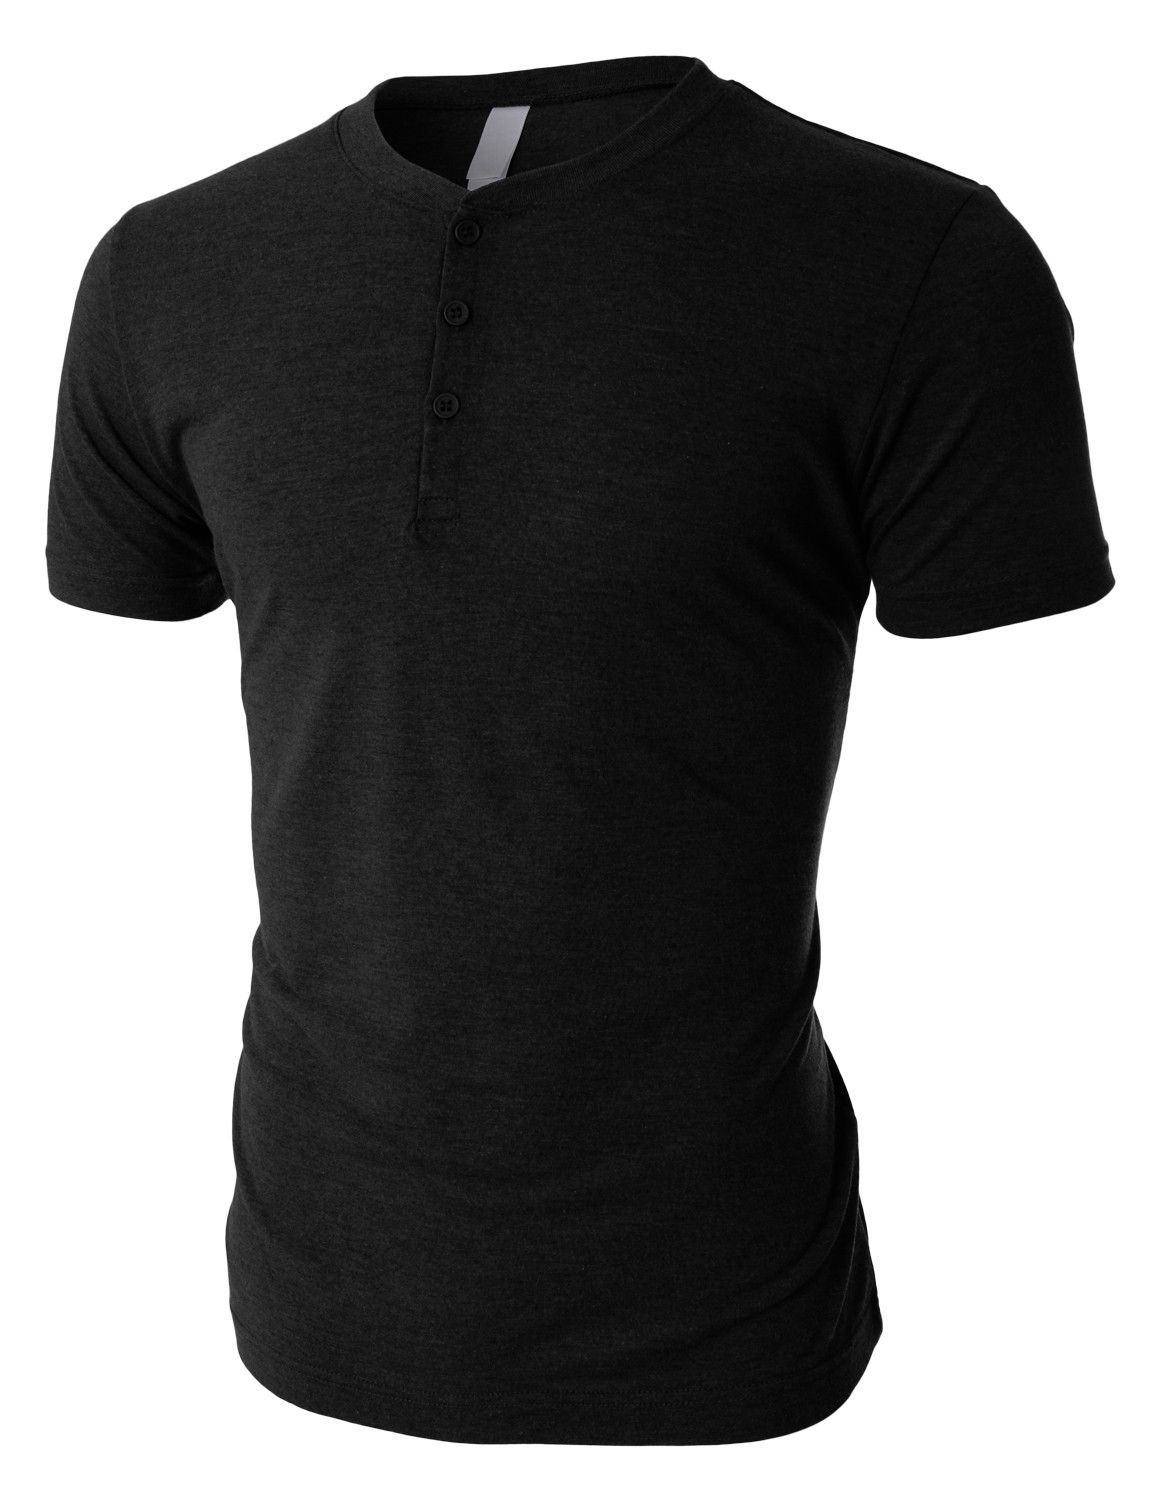 cfbef4da534 This tri-blend short sleeve henley shirt with button placket is an all-time  favorite. Made of a luxurious soft jersey material and crafted from a ...